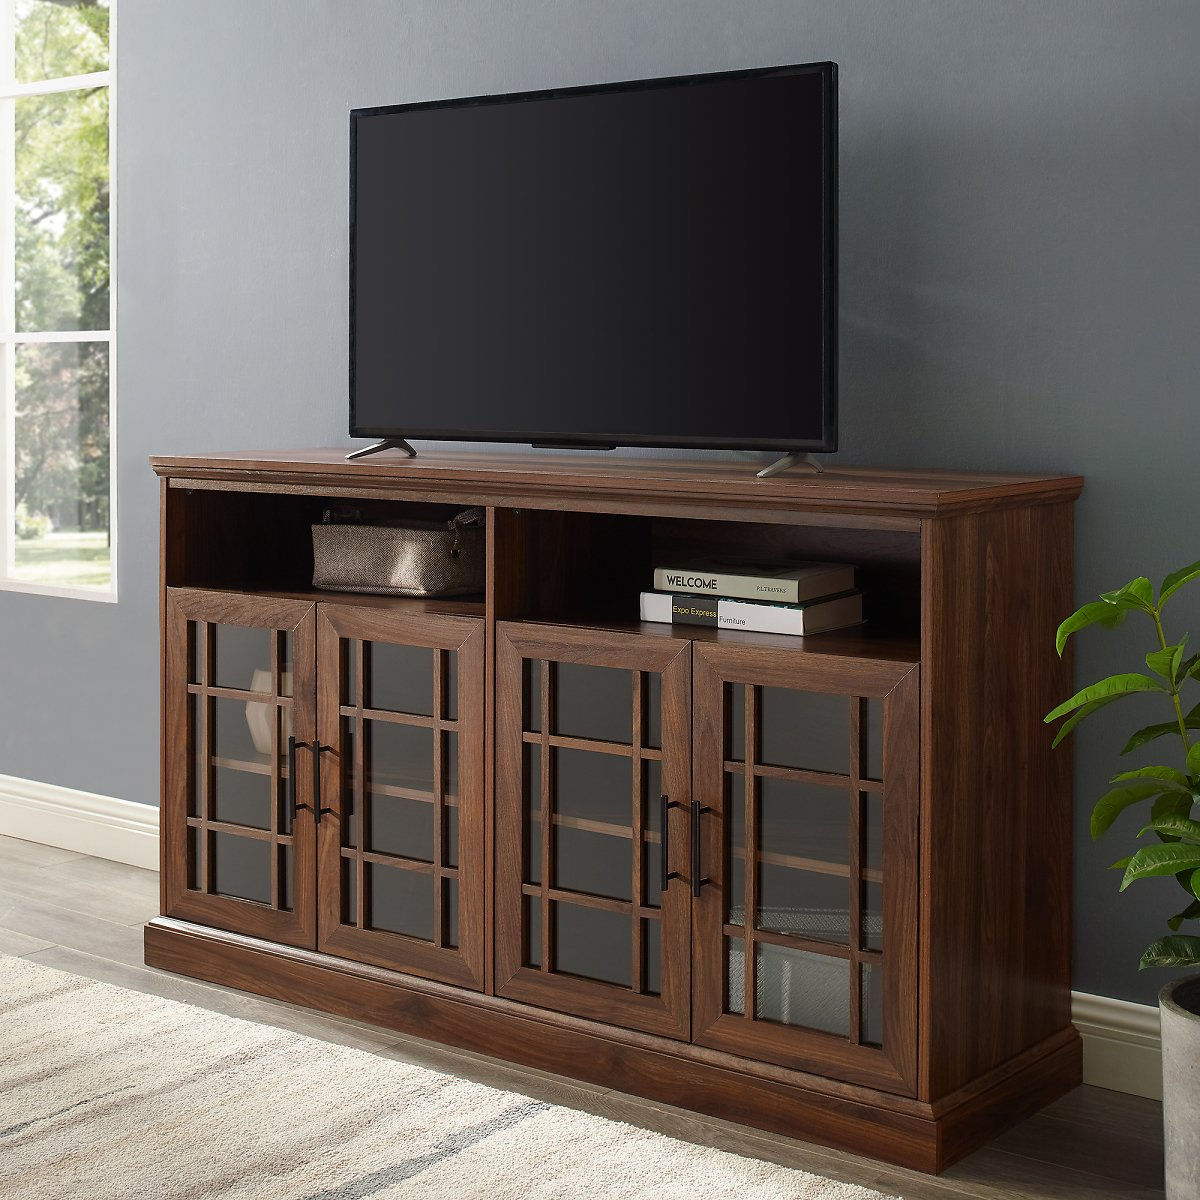 Manor Park Classic Glass Door TV Stand for TVs Up to 65